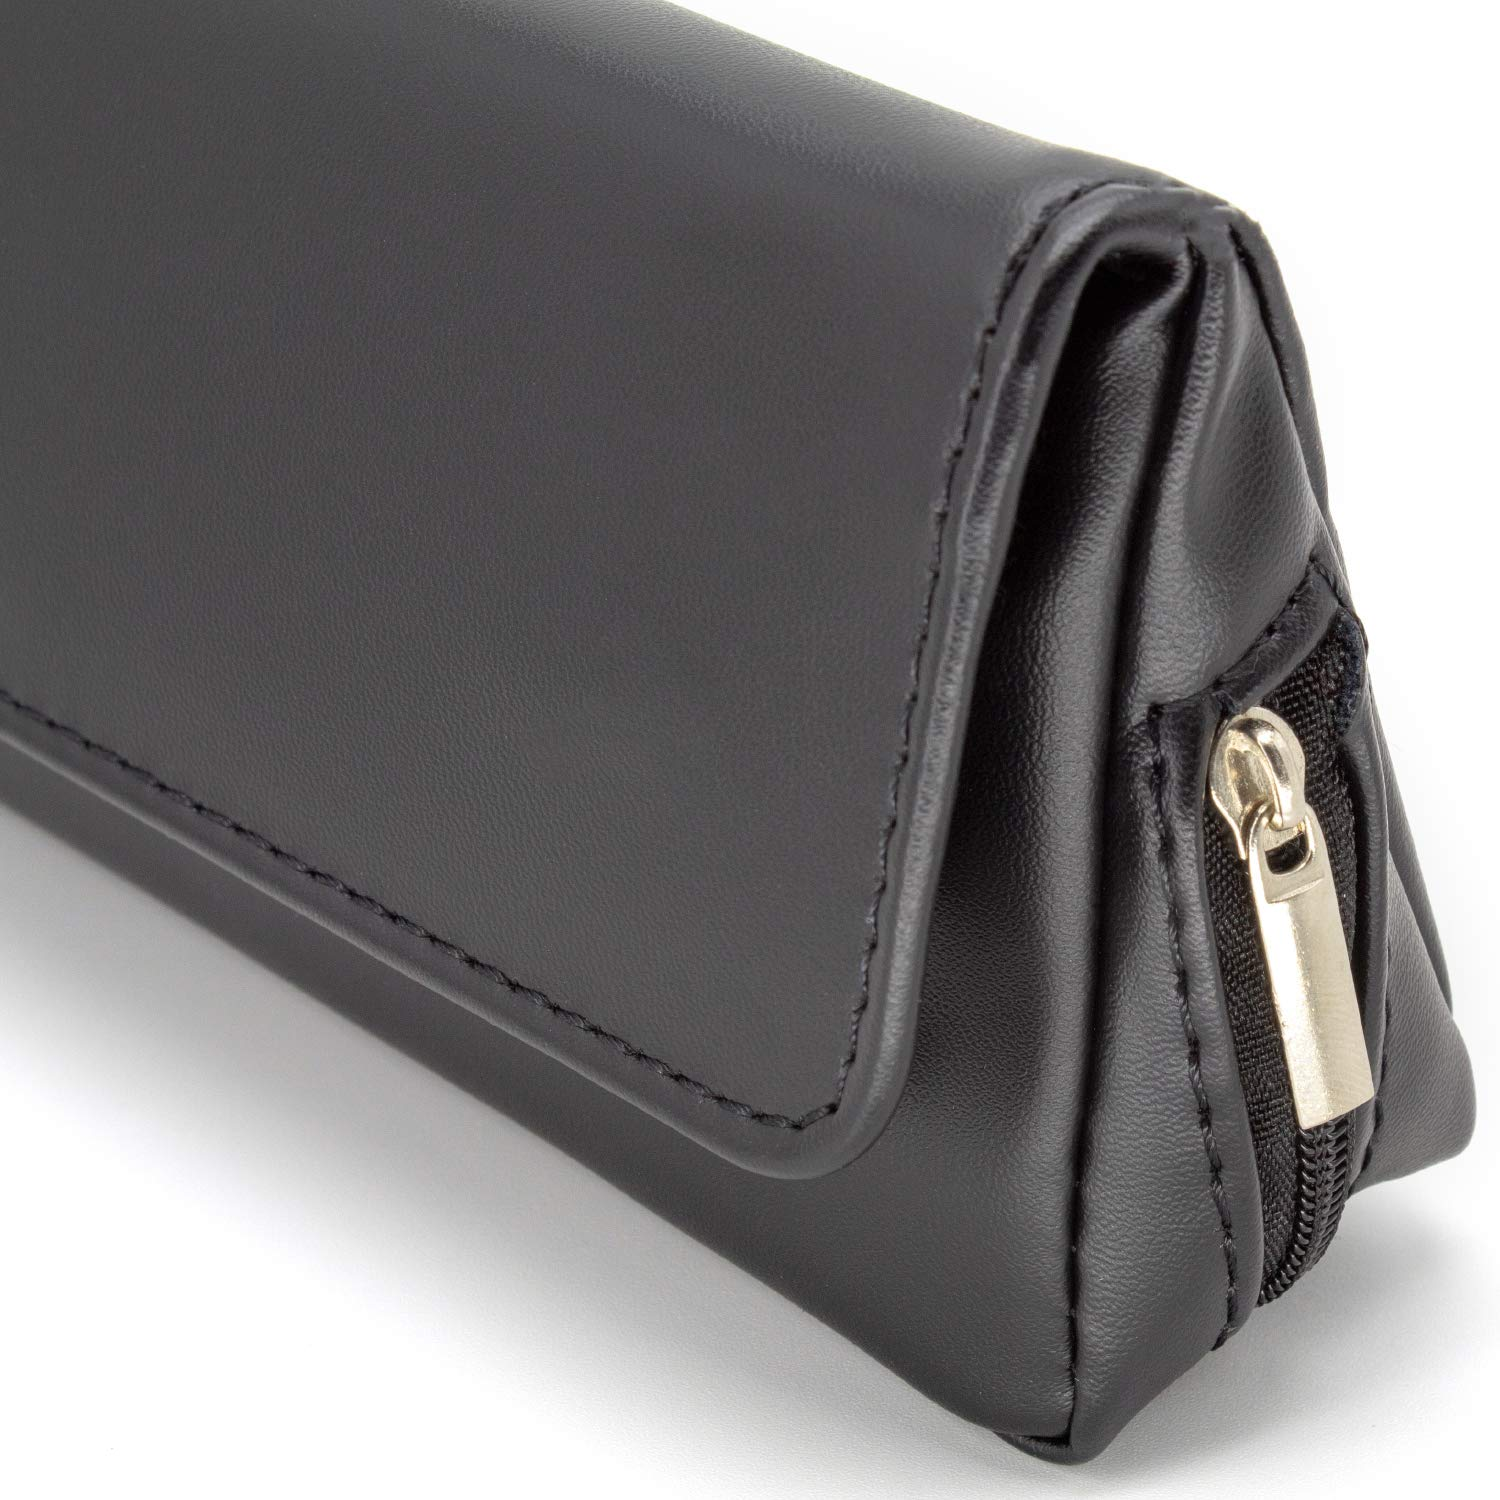 Holds 50g AKORD Soft Black Nappa Leather Tobacco Pouch with Rubberised Lining